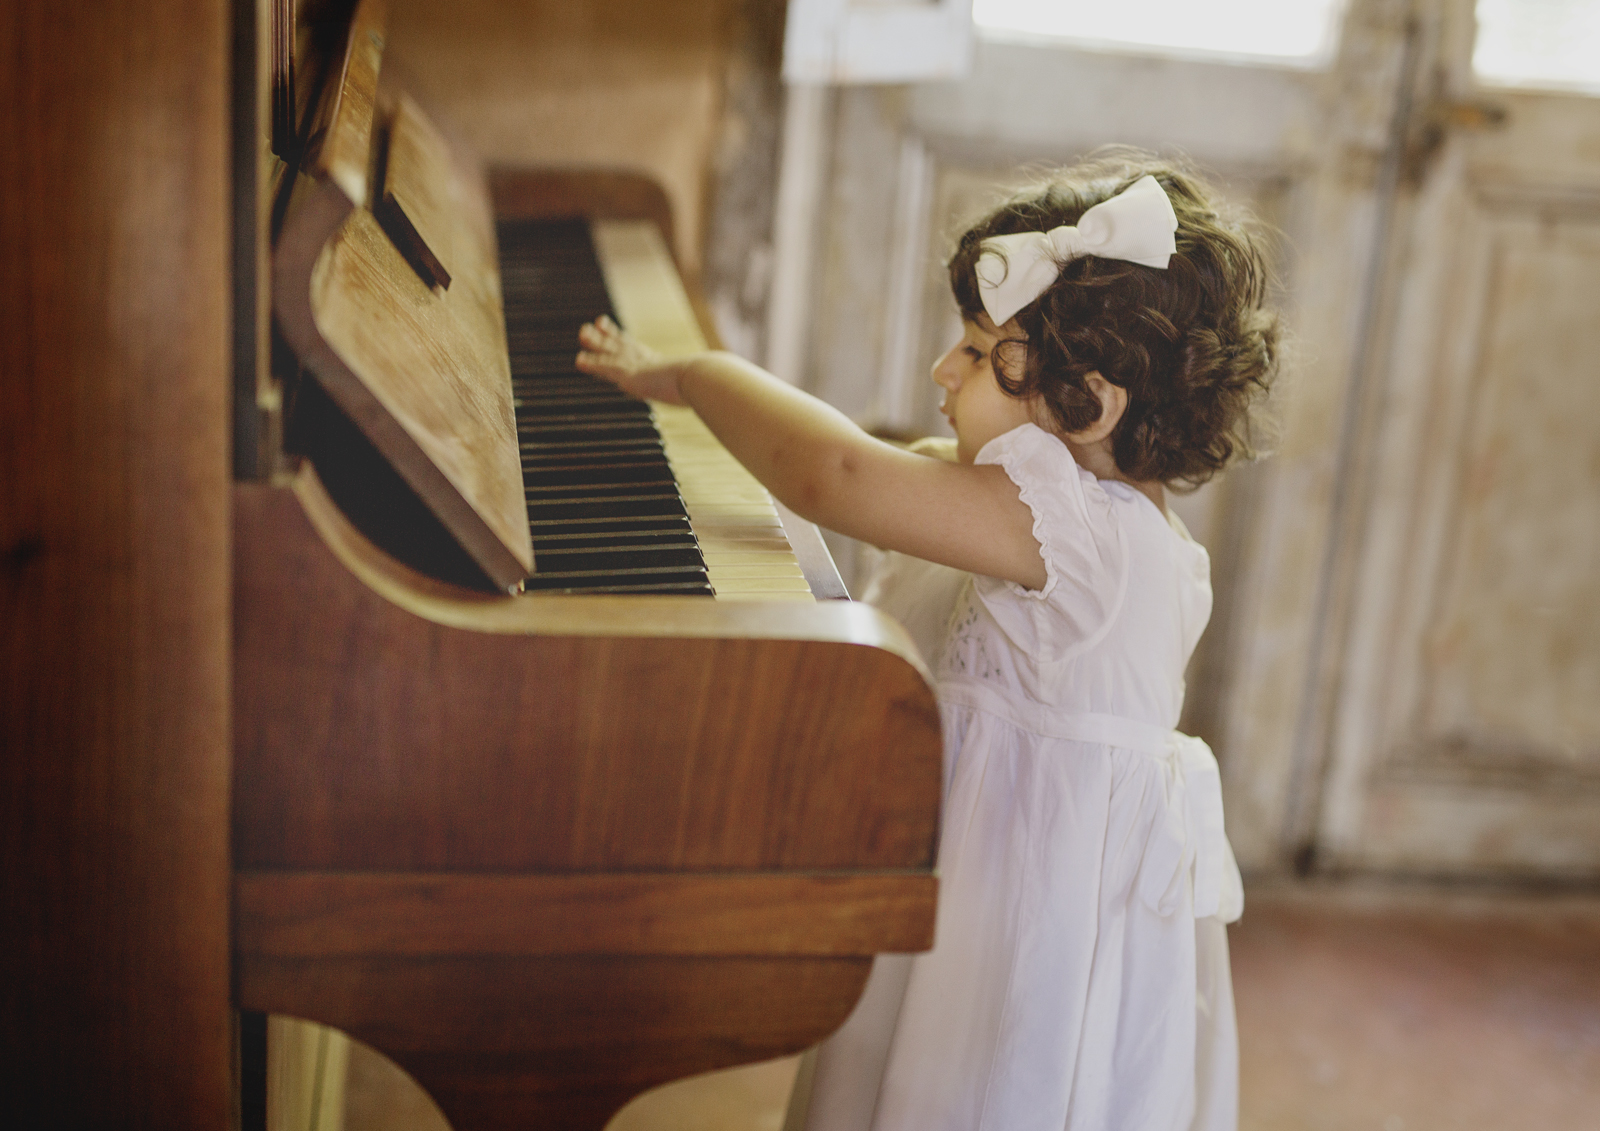 Toddler playing on the piano!